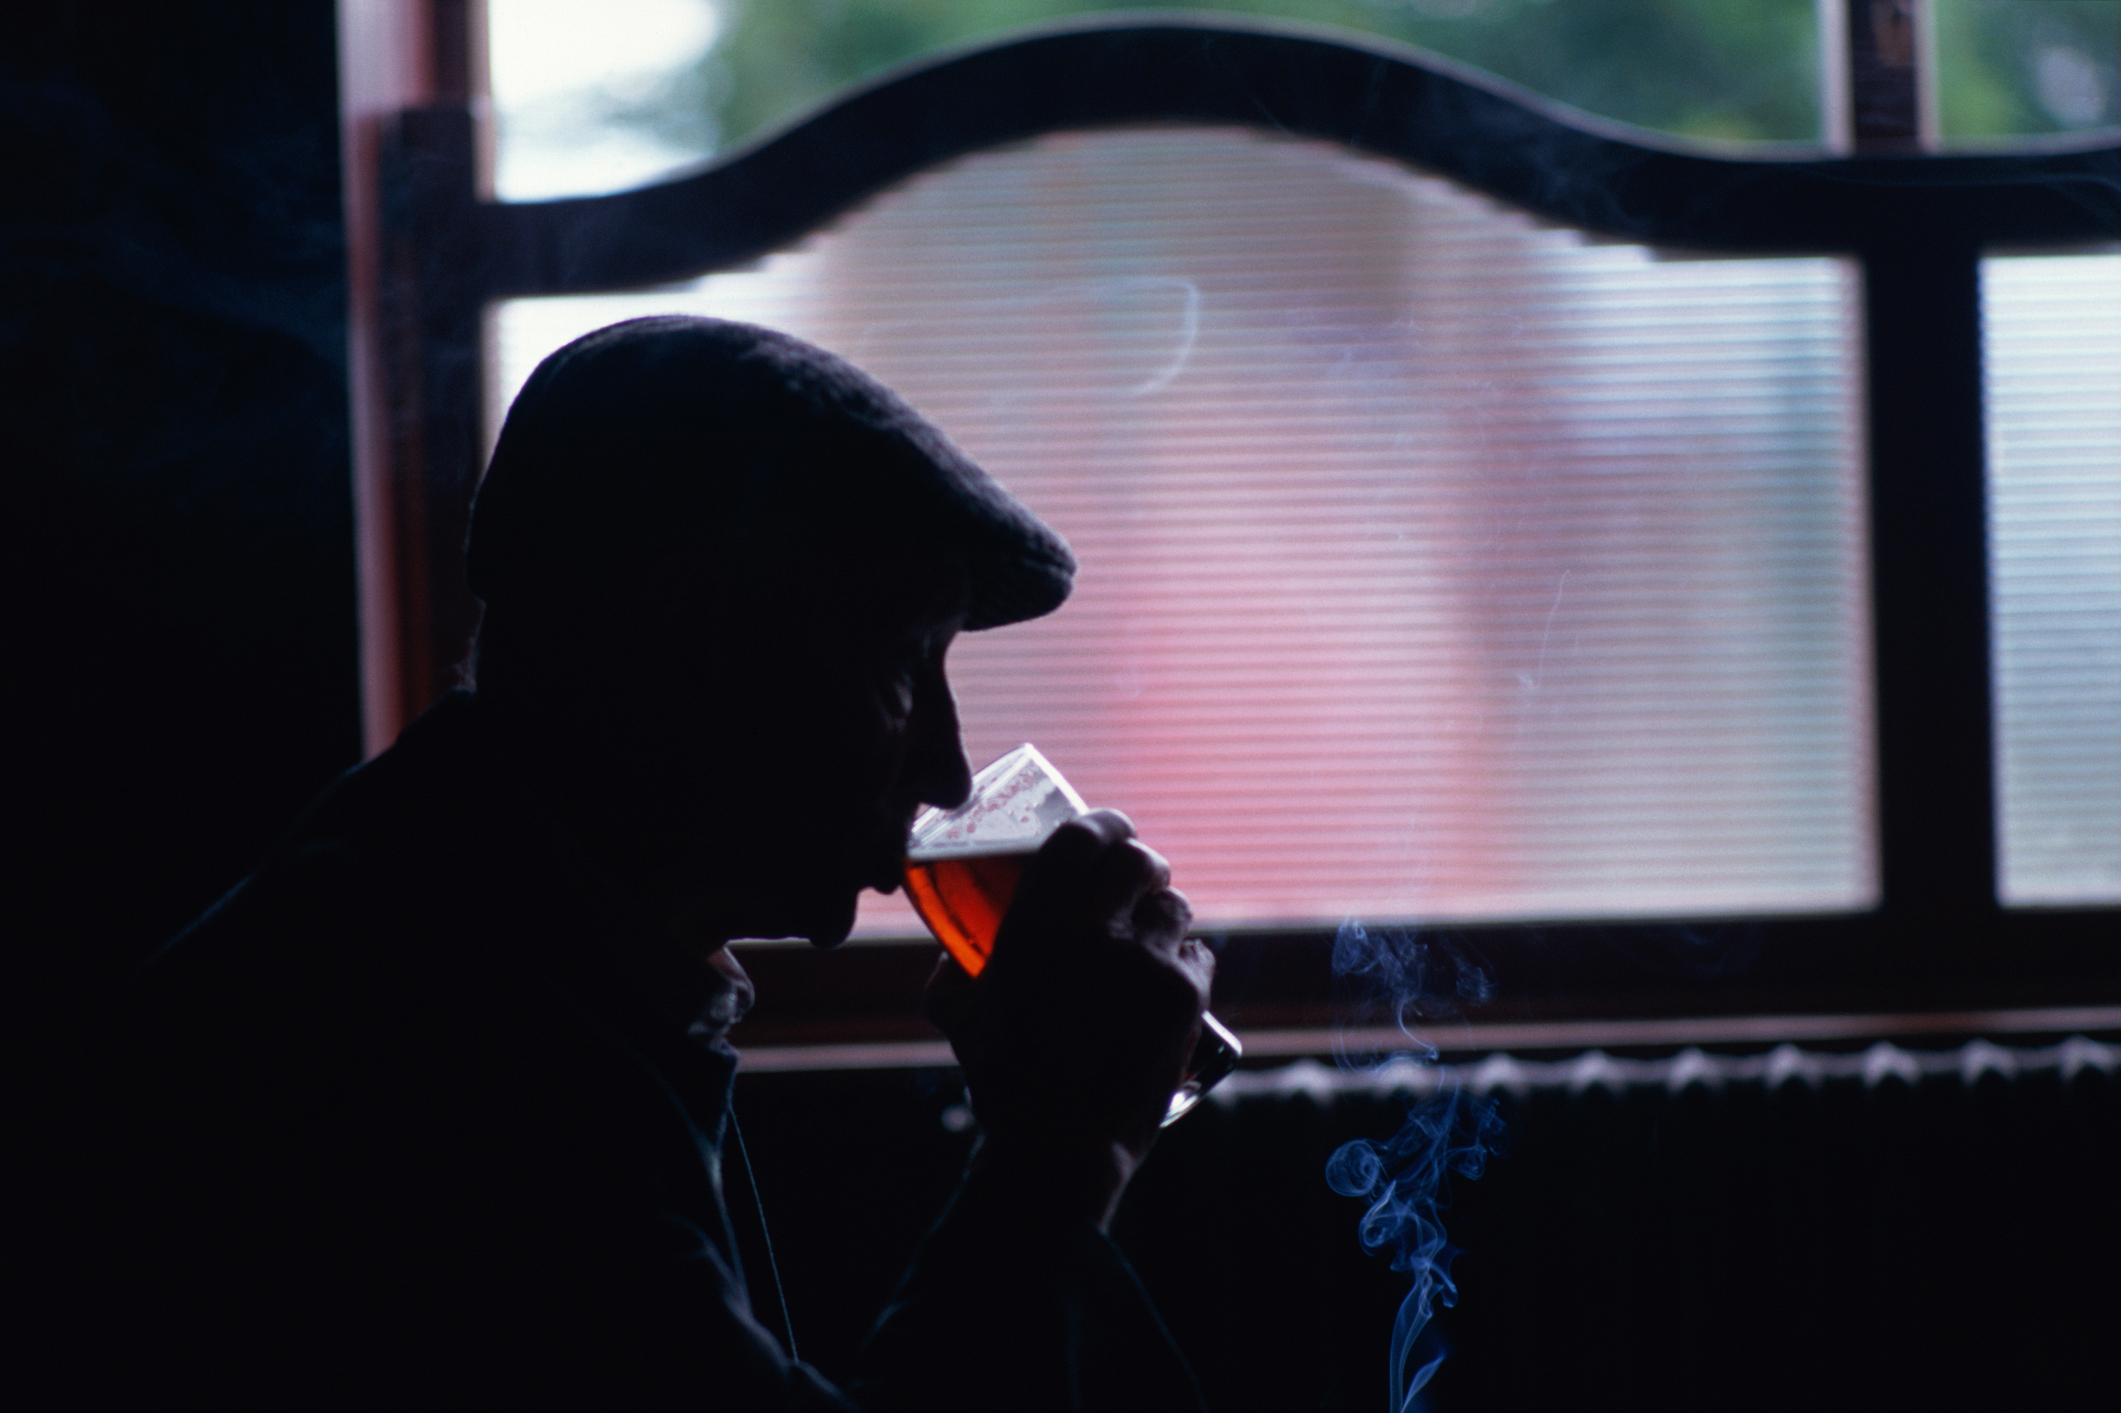 Pubs are the nation's museums and cheap alcohol is killing them